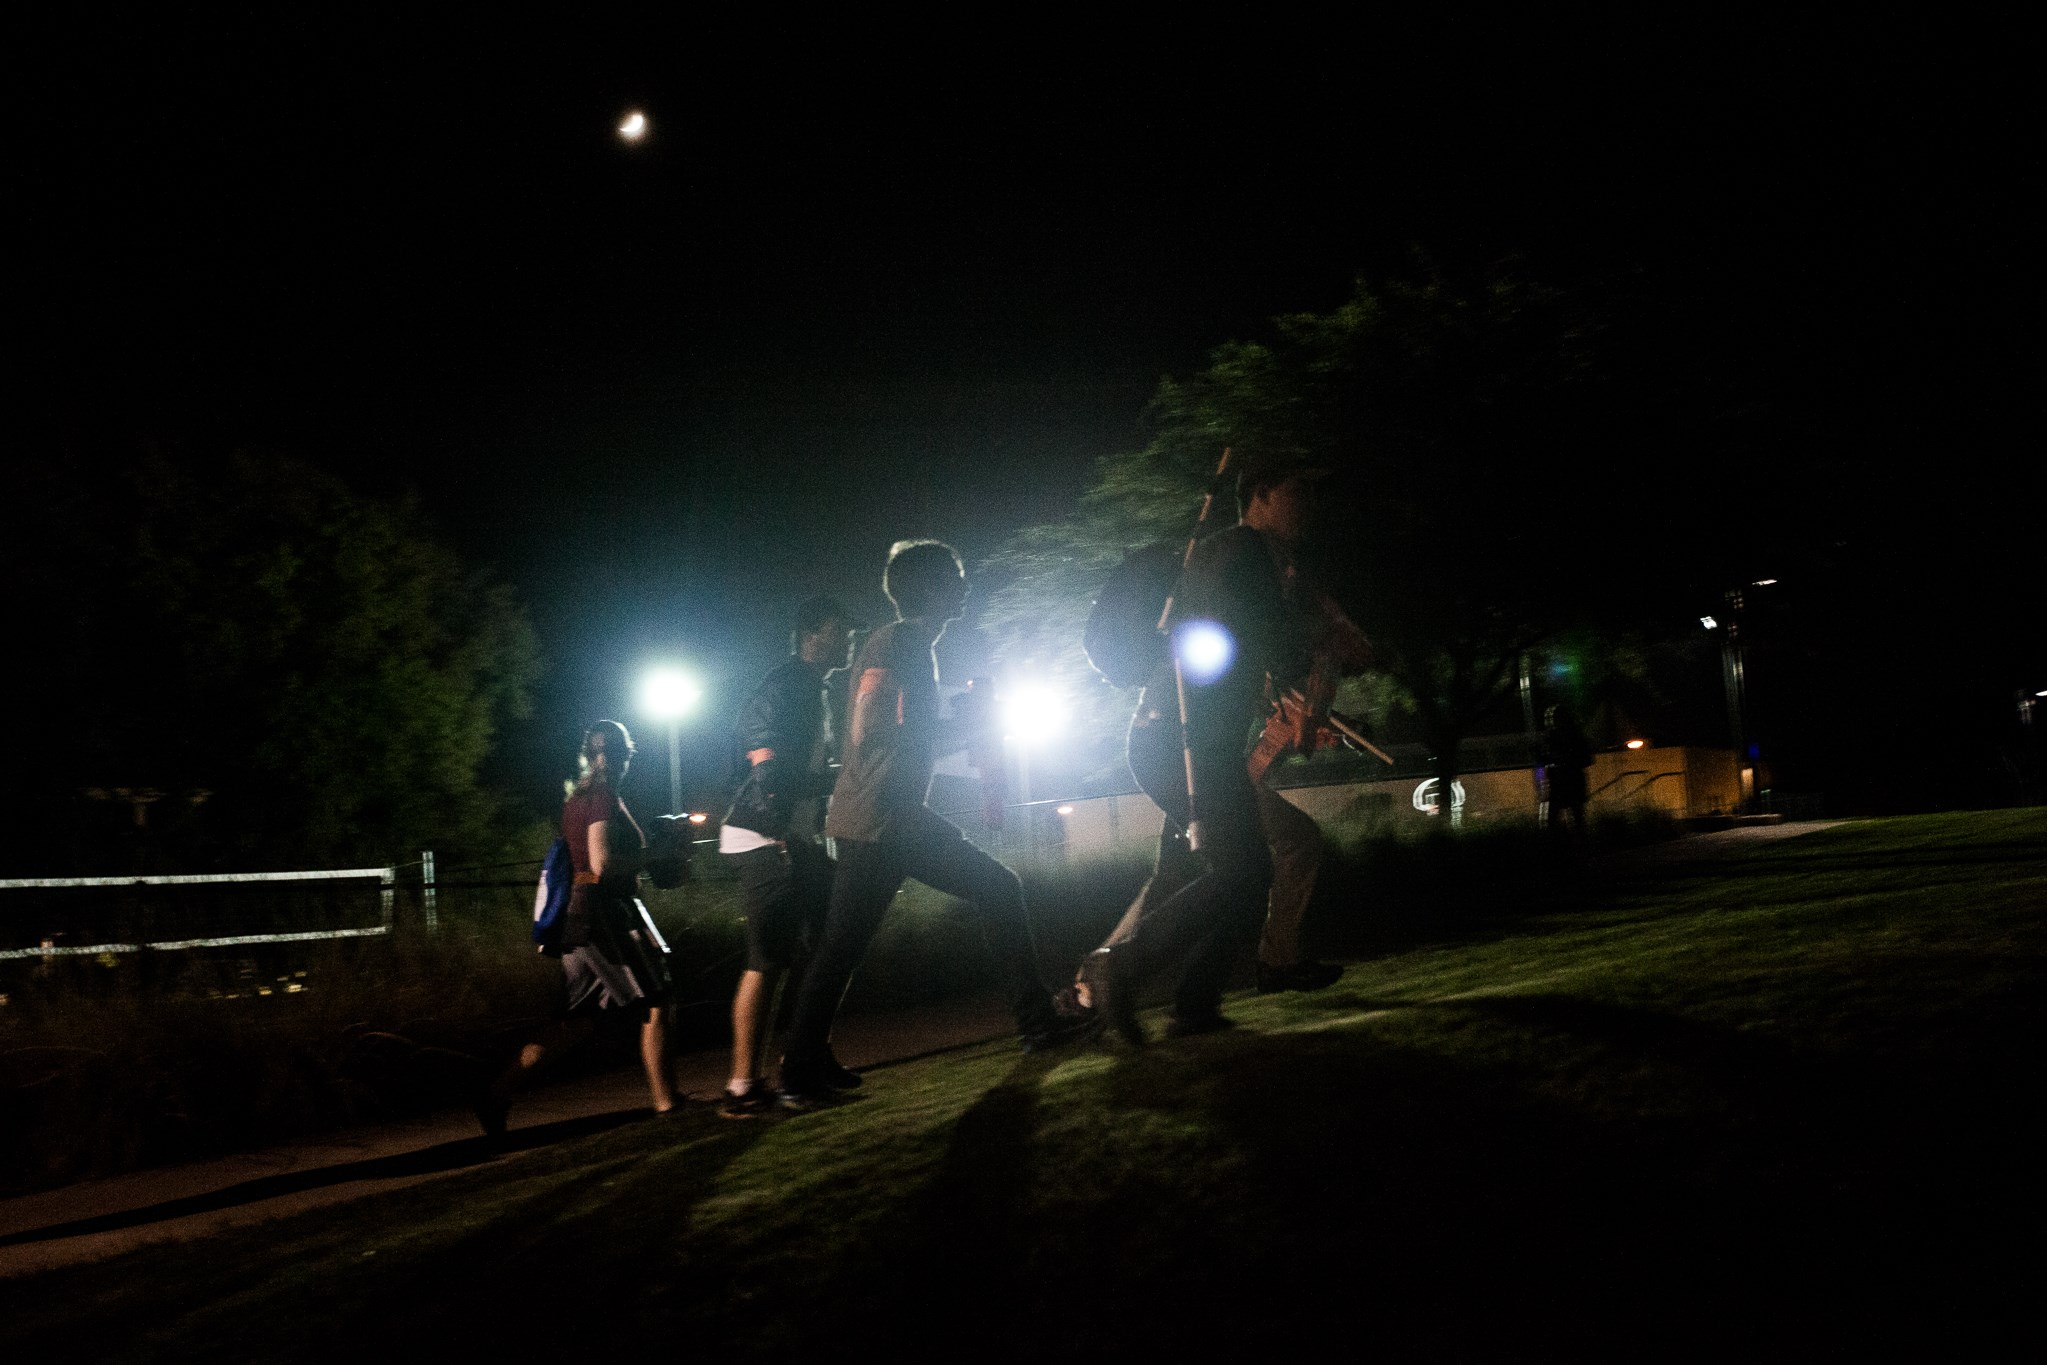 Students running around in the dark during a night mission. Photo credit: Liam Brooks